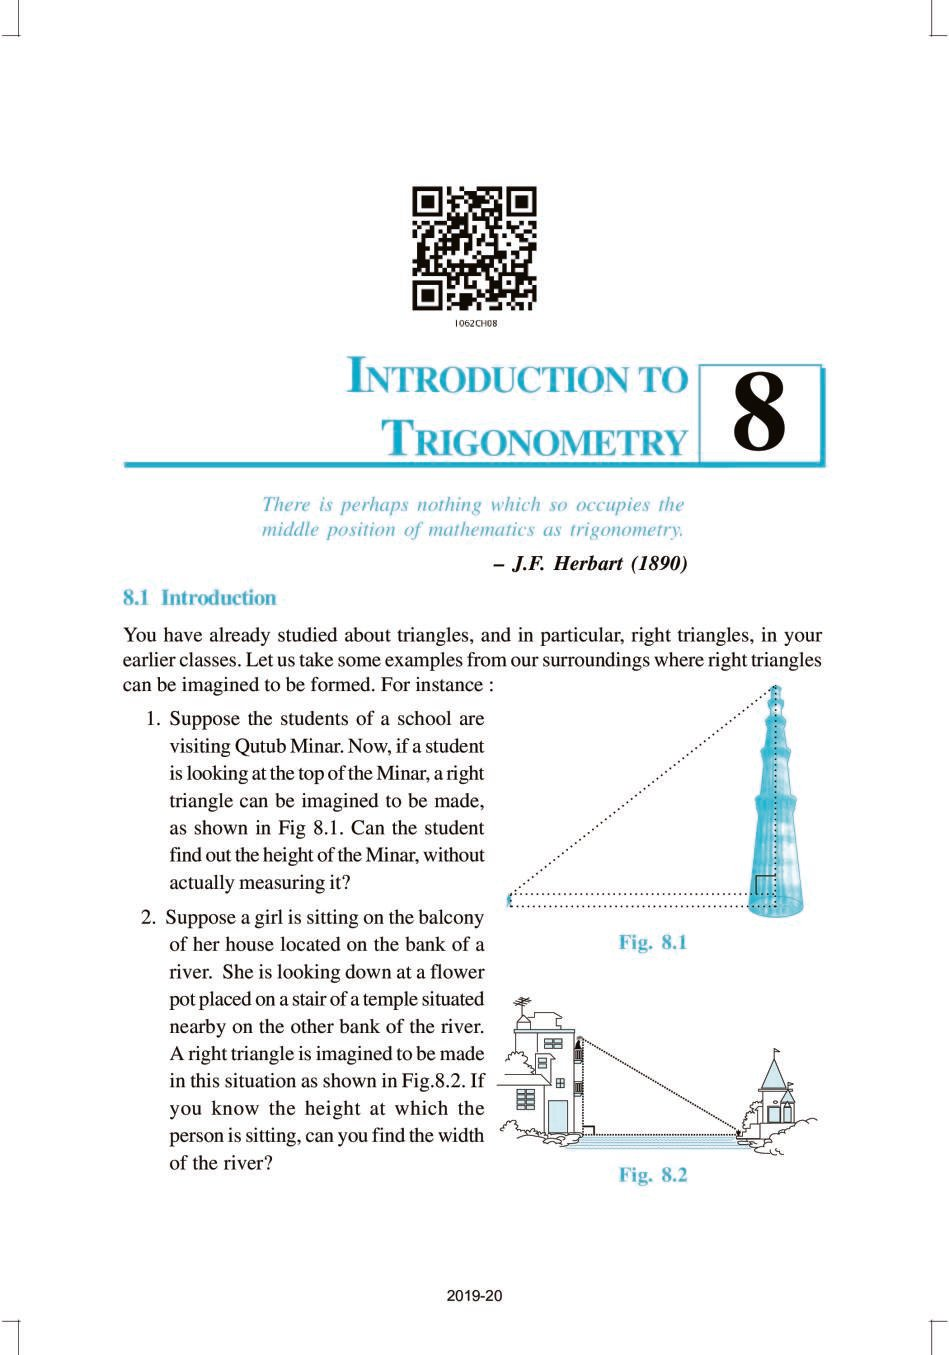 NCERT Book Class 10 Maths Chapter 8 Introduction to Trigonometry - Page 1